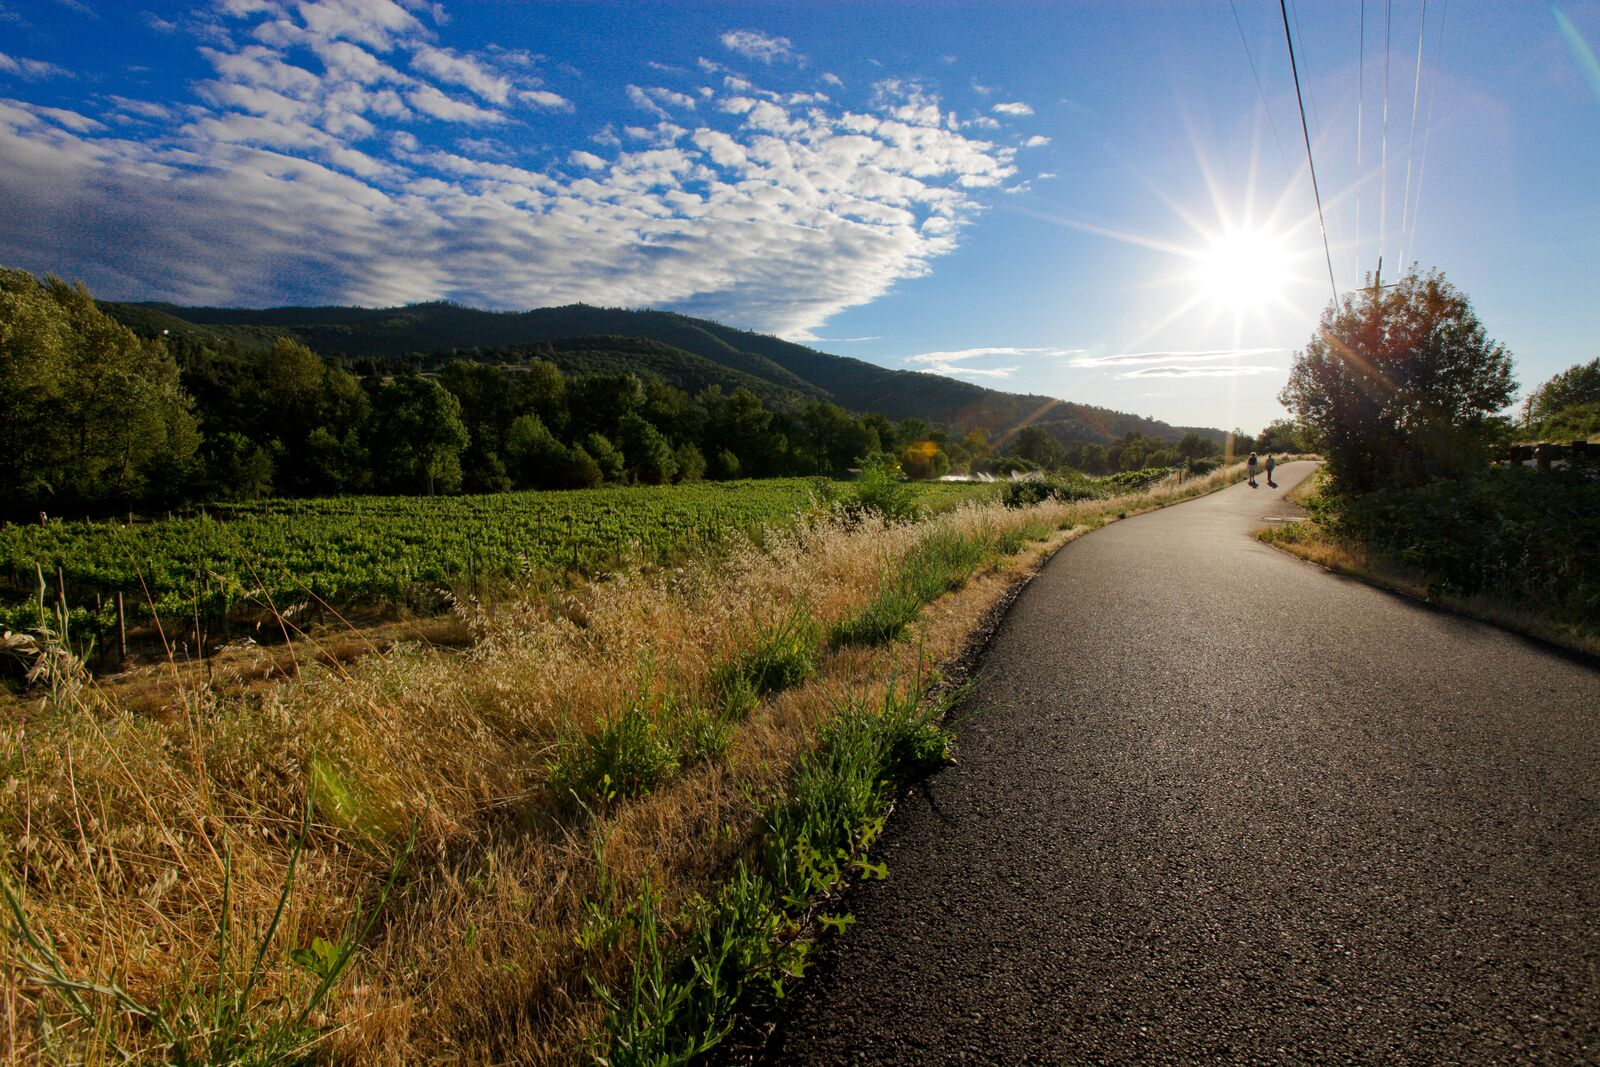 The views along the Bear Creek Greenway, a bicycle path that spans 40ish miles, winds through vineyards, along Bear Creek, and connects much of the neighboring cities.